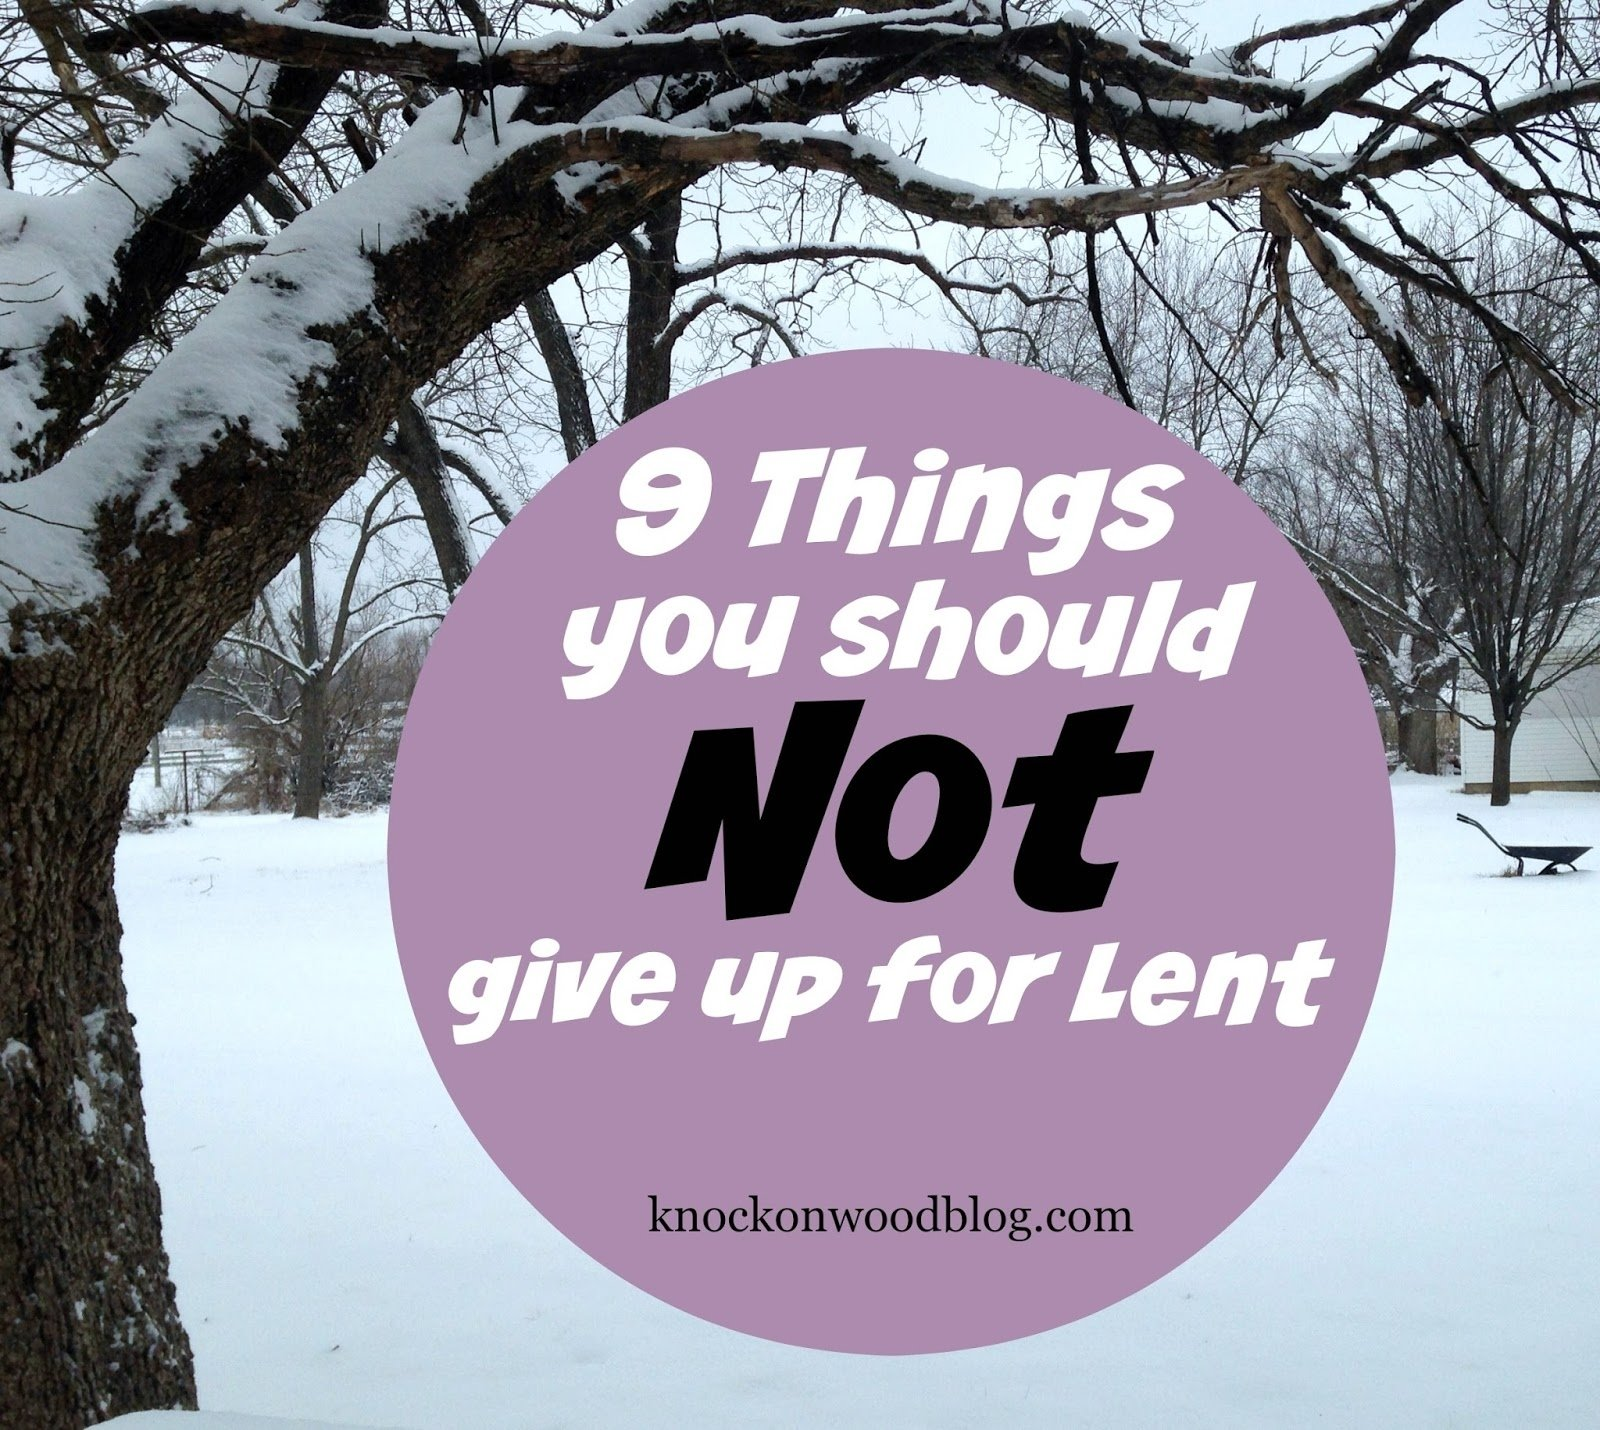 10 Fashionable What To Give Up For Lent Ideas knock on wood 9 things you definitely should not give up for lent 2 2021